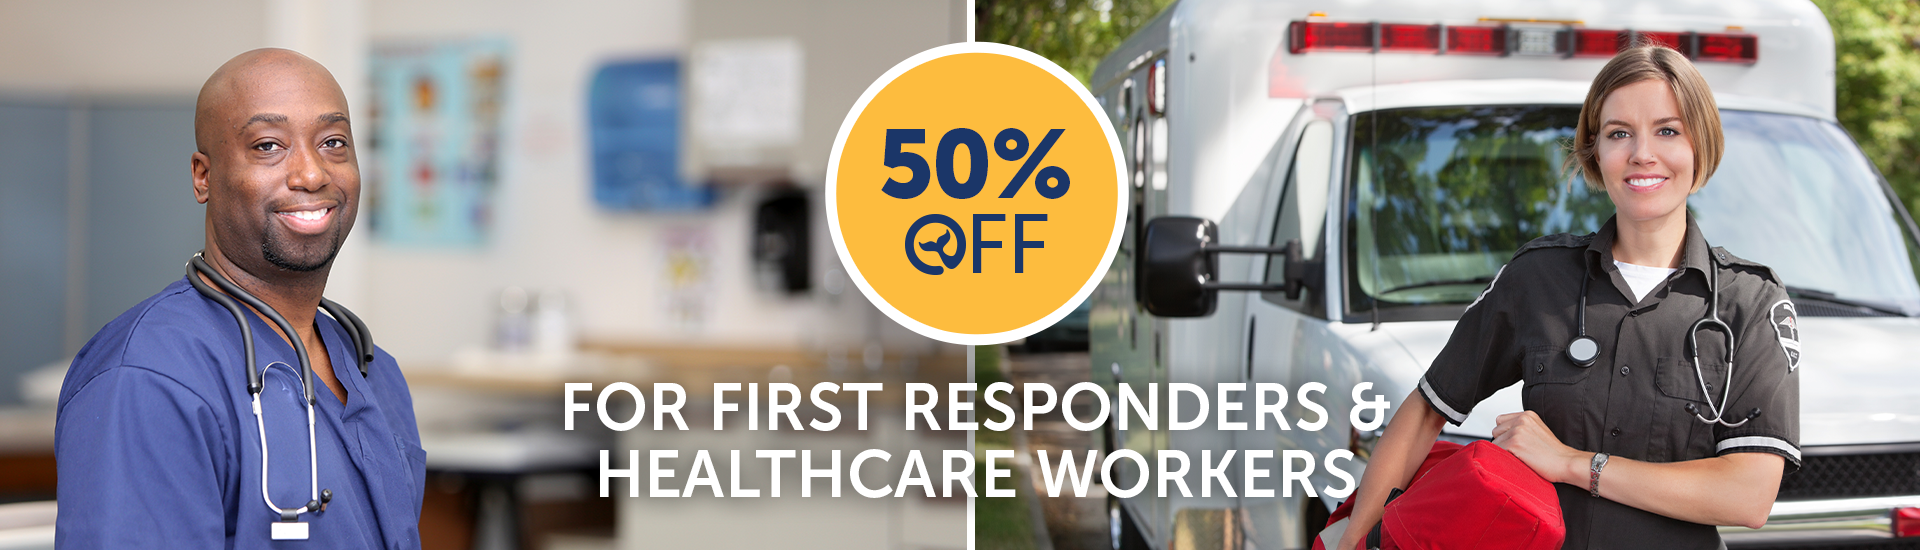 50% Off for First Responders and Healthcare Workers